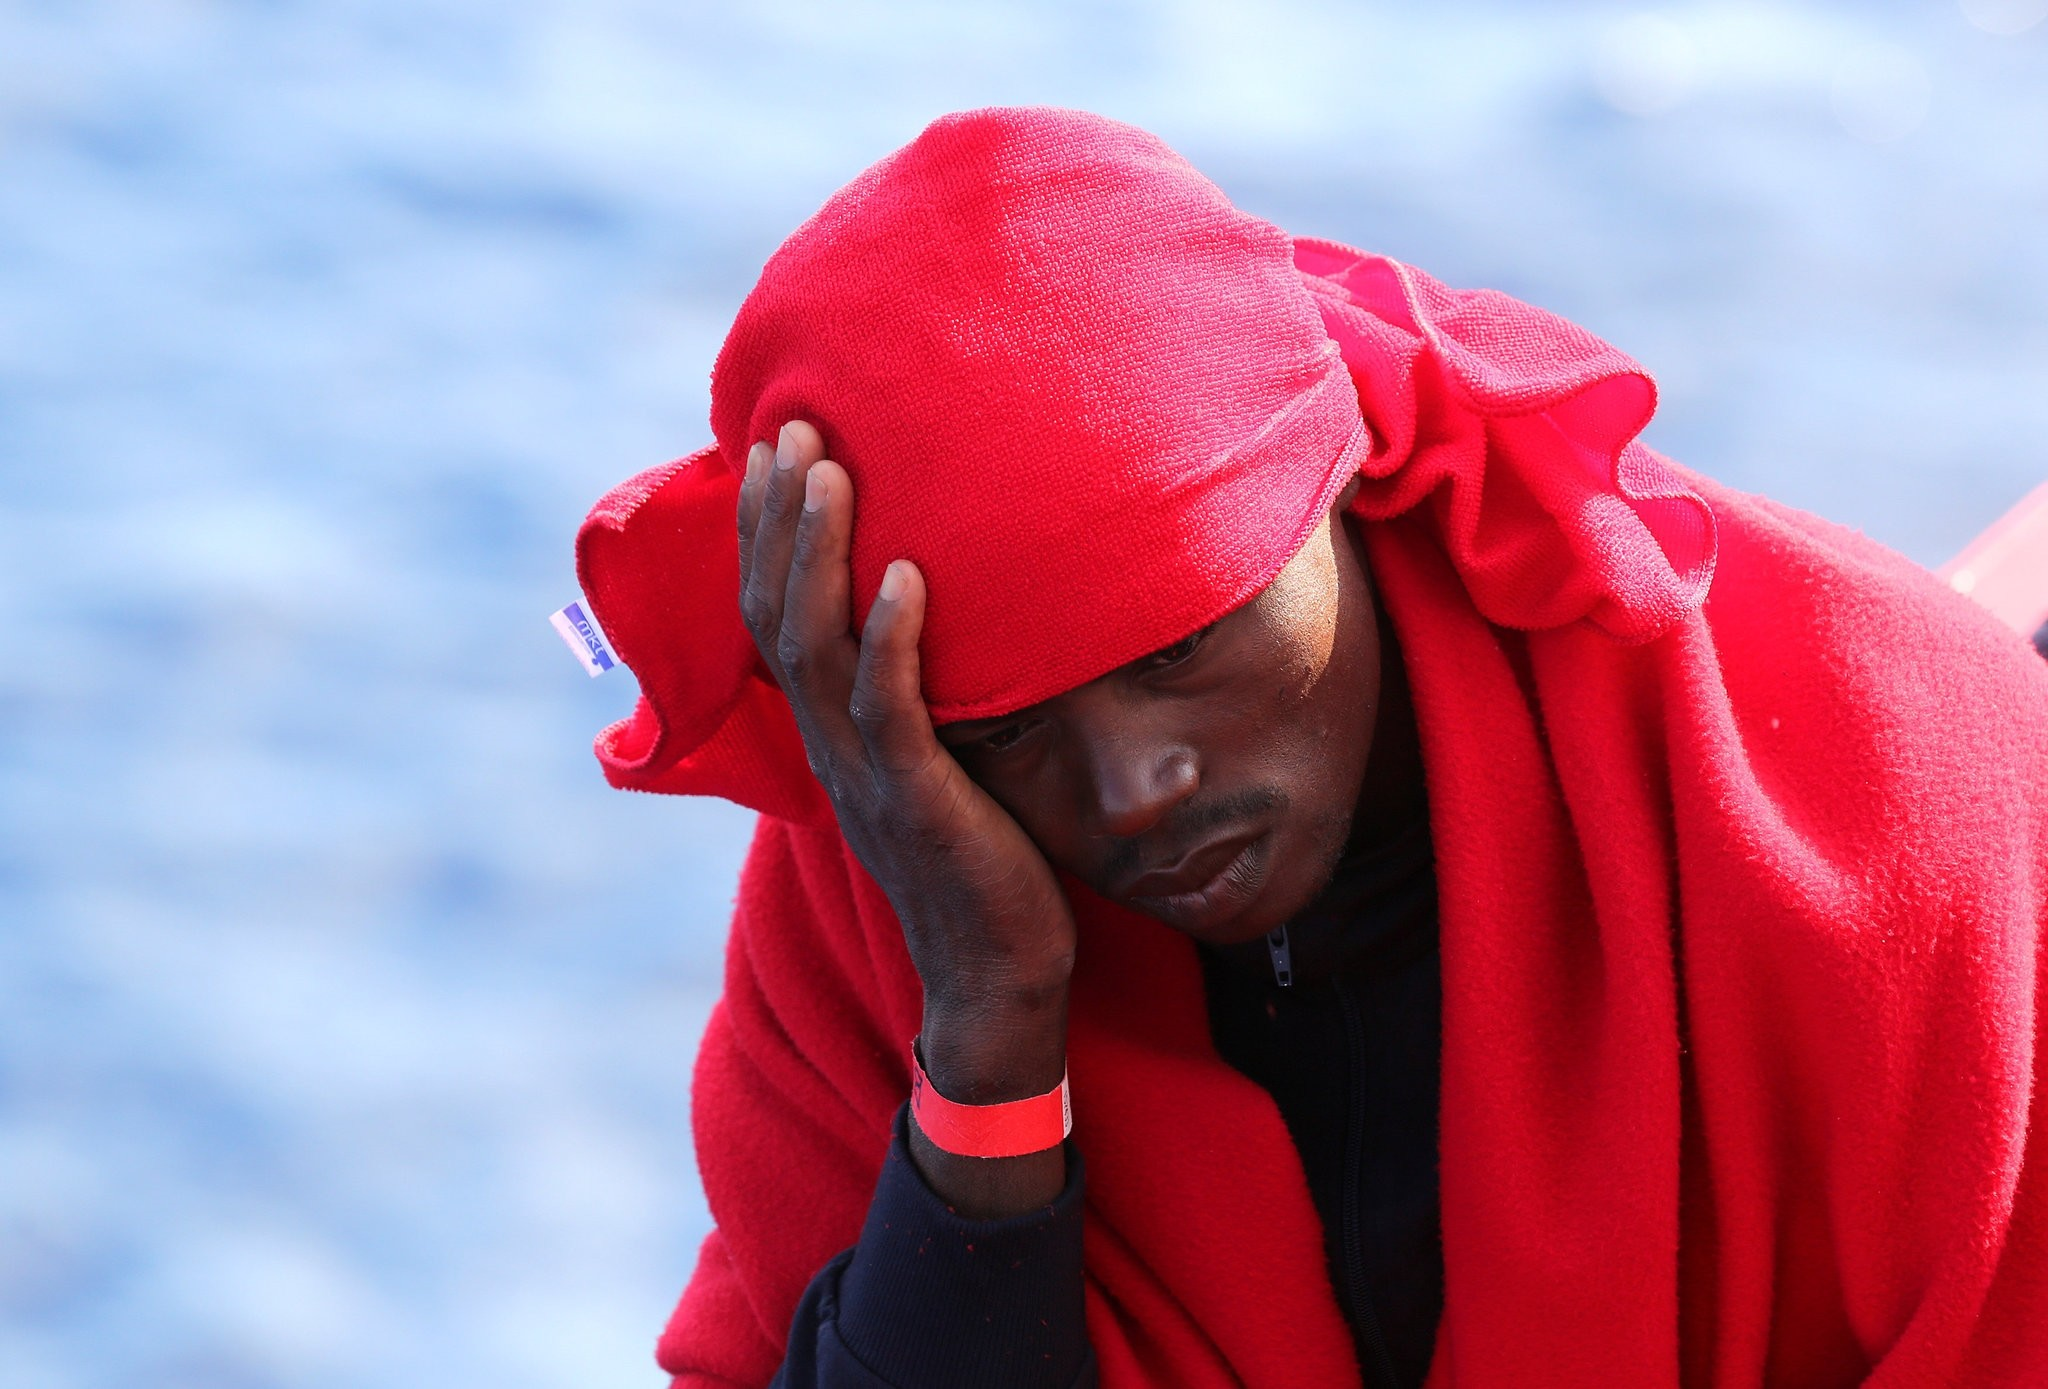 A migrant rests on the Vos Hestia ship after being rescued by the ,Save the Children, NGO crew in the Mediterranean sea off the Libya coast, June 19, 2017. (REUTERS Photo)